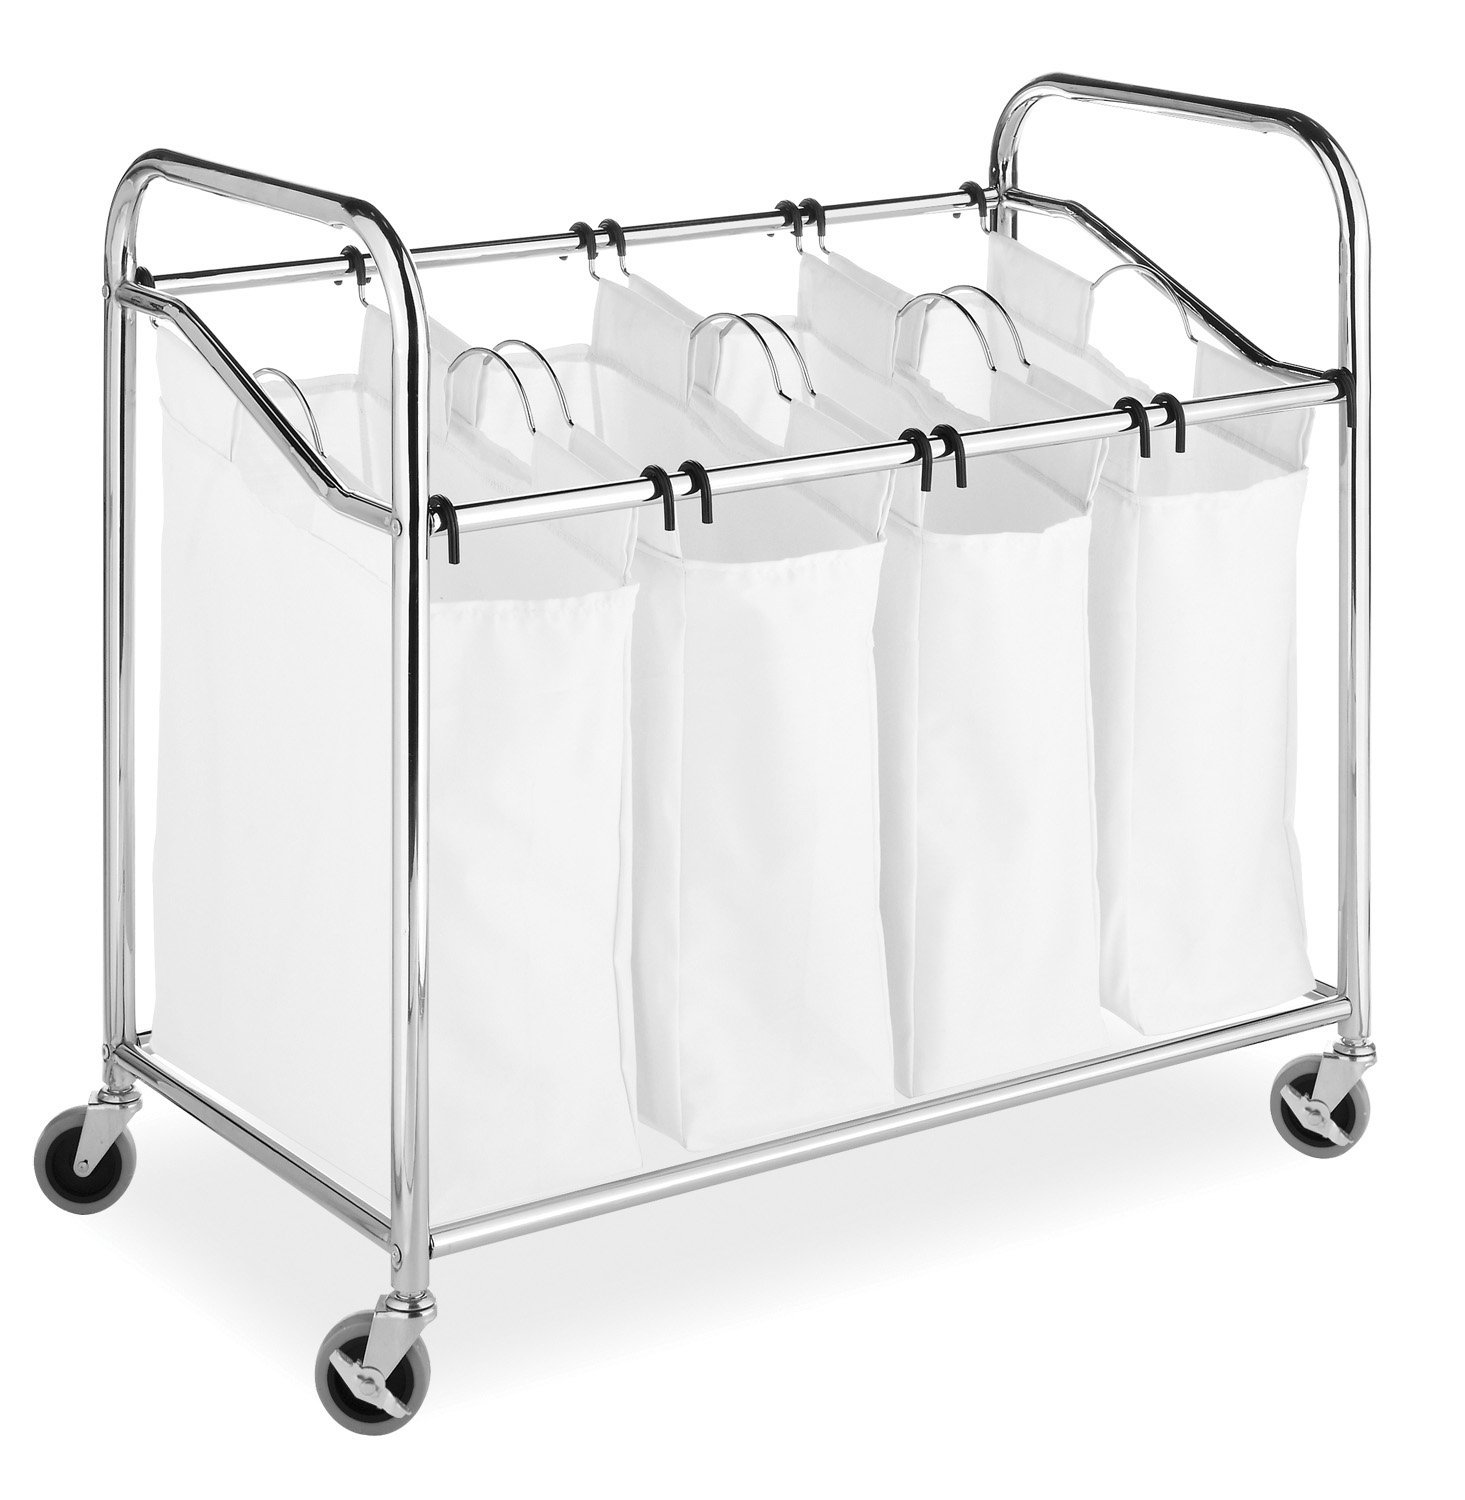 Whitmor 4-Section Laundry Bag Sorter, Chrome & White